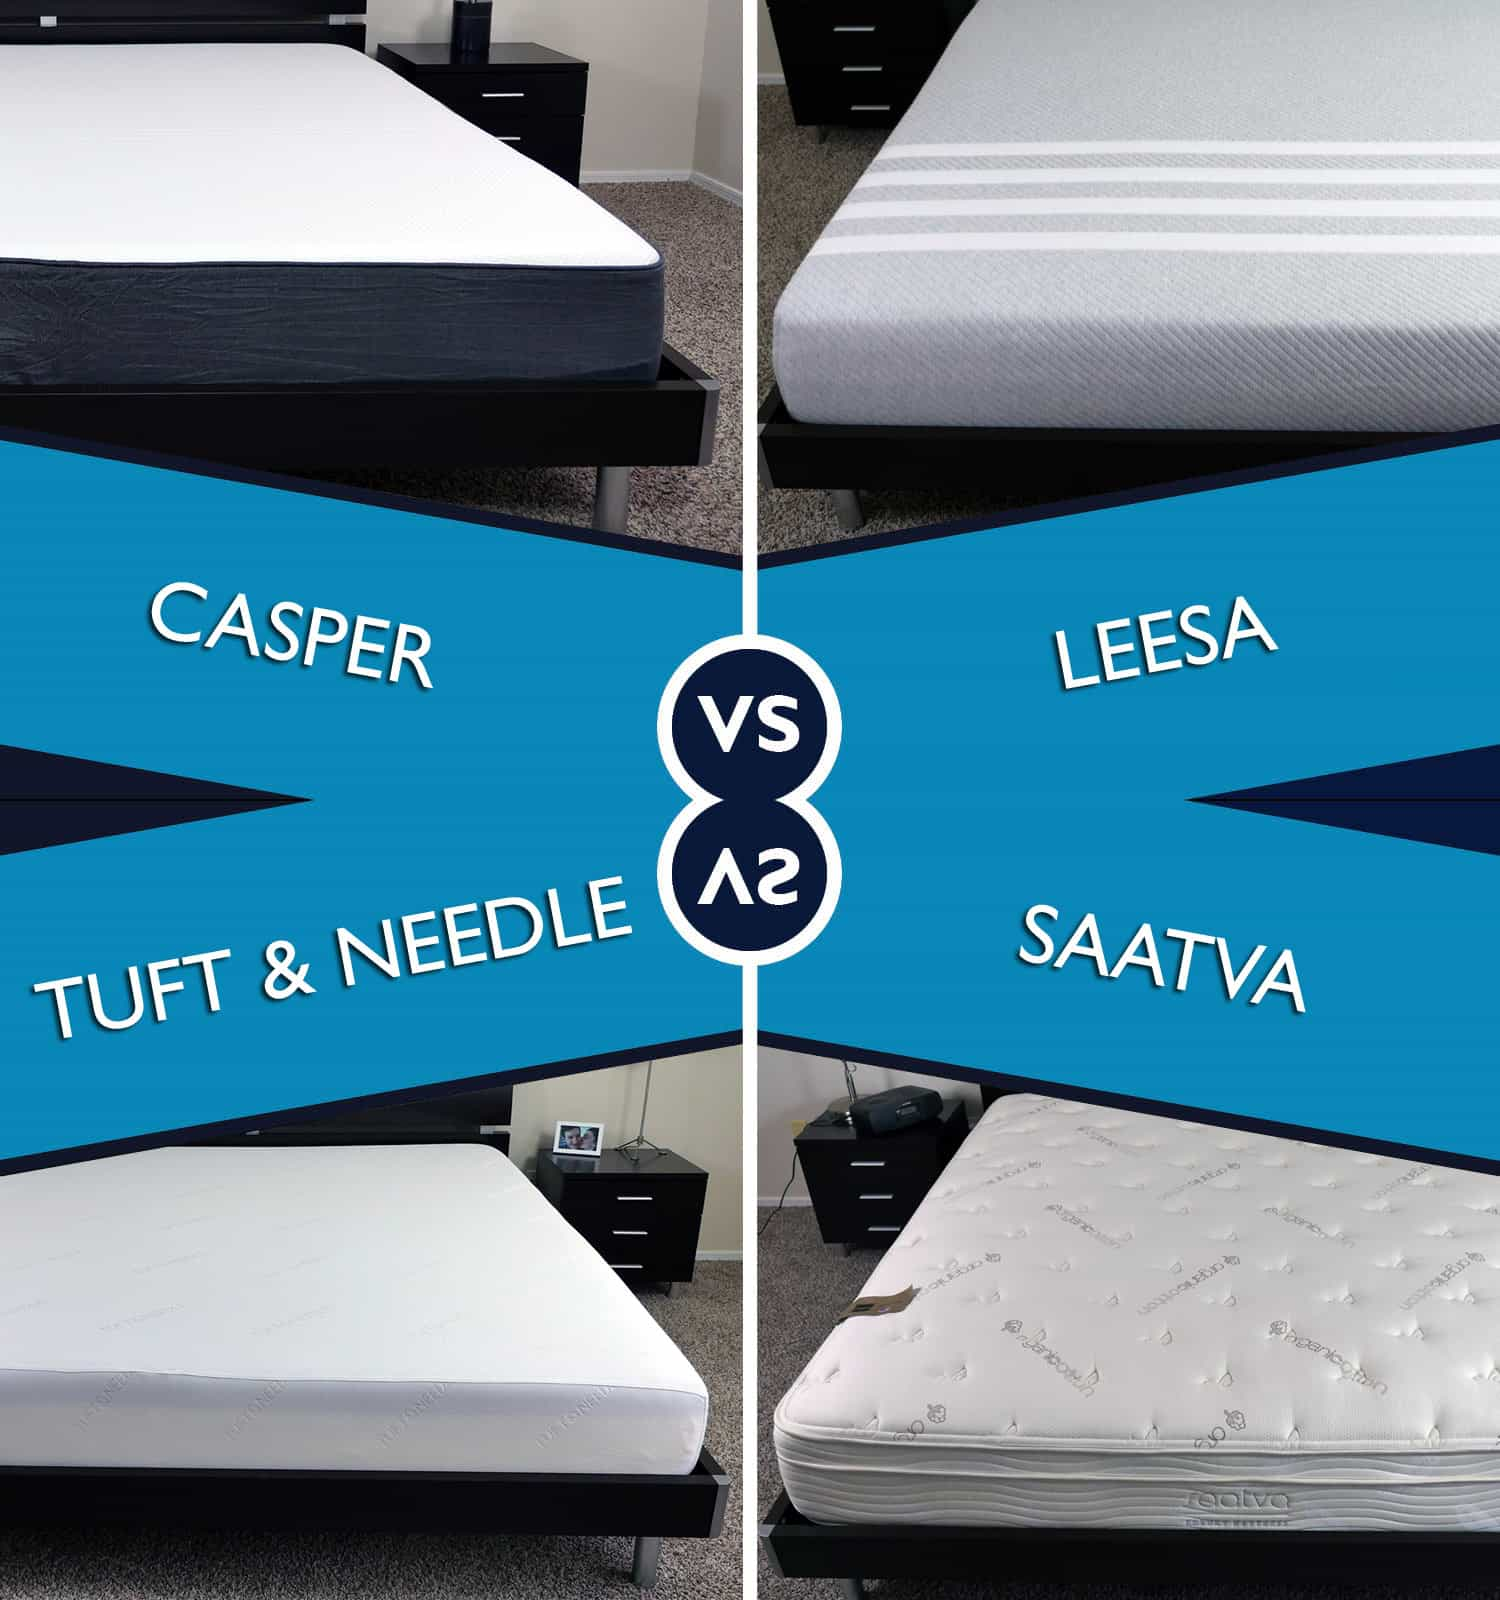 Keetsa mattress reviews naturallatexmattressco for Brooklyn bedding vs tuft and needle